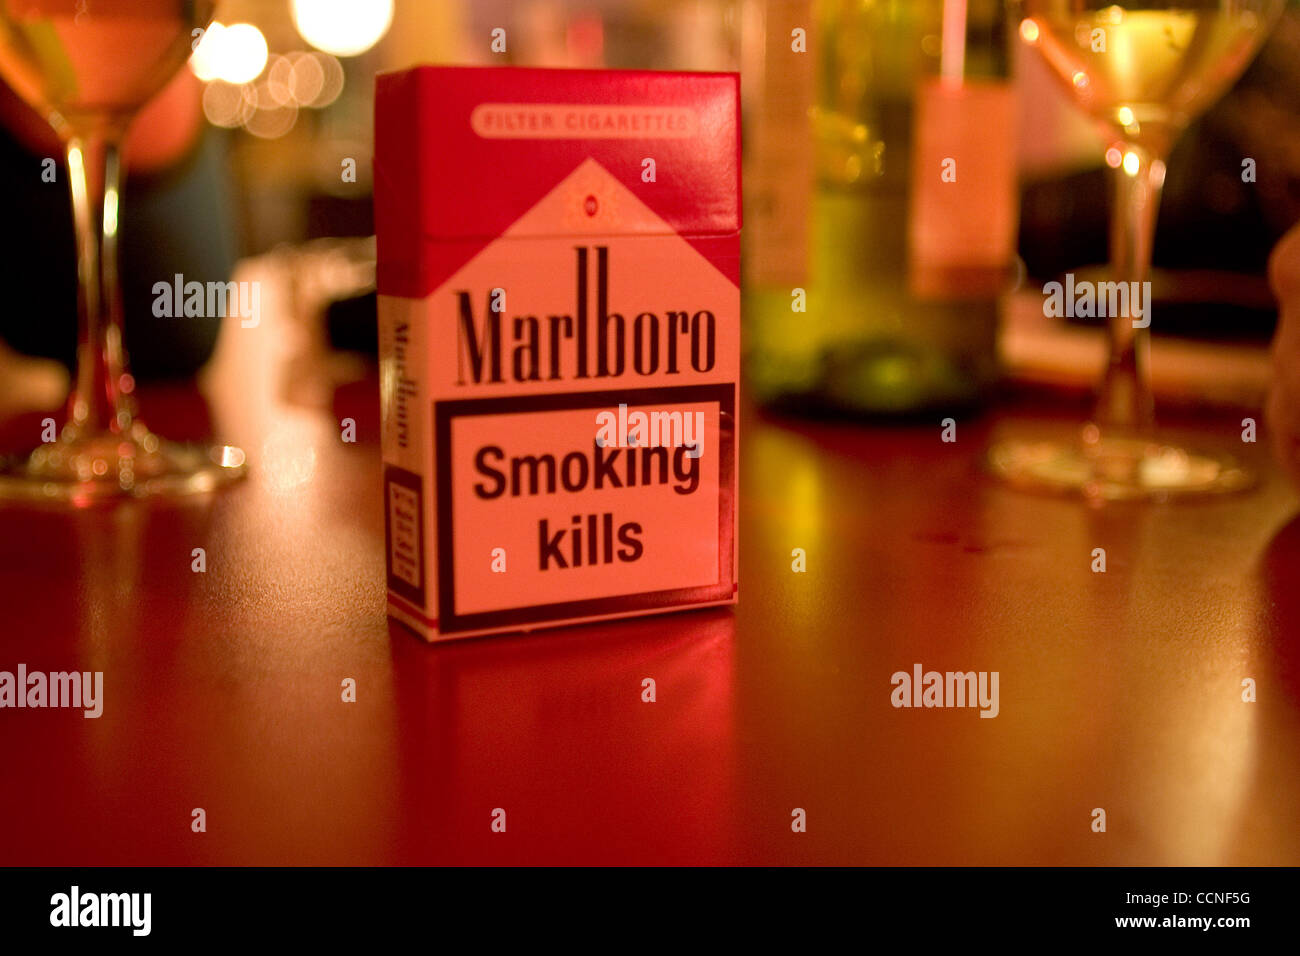 How much are Marlboro cigarettes in Wisconsin